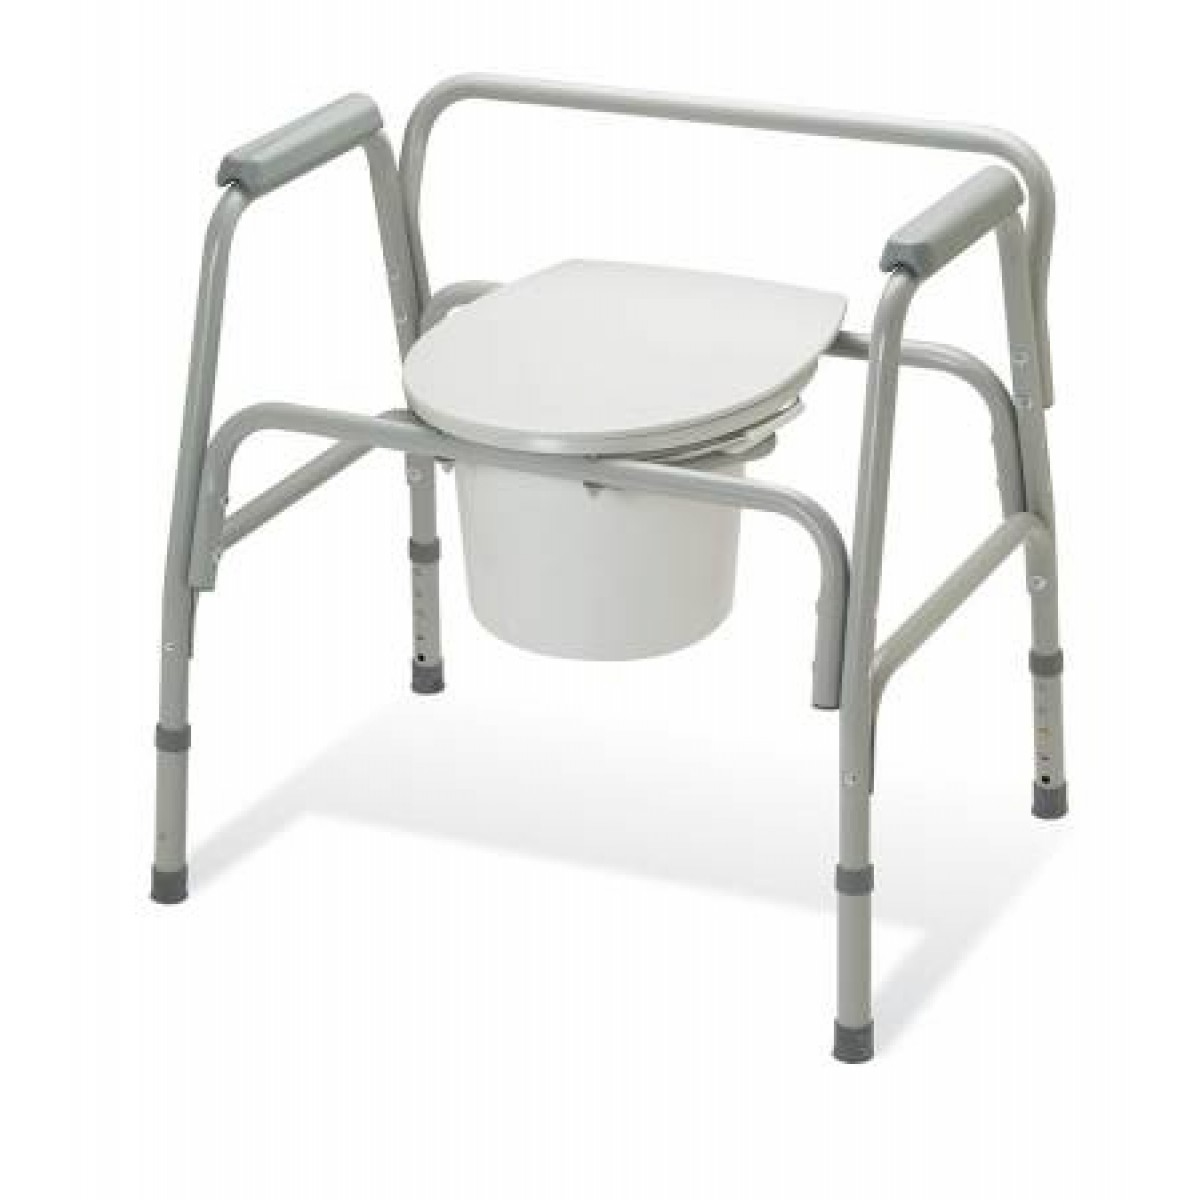 heavy duty commode chair ikea dining covers henriksdal ez care 3 in 1 400 lbs 18 to 22 inch